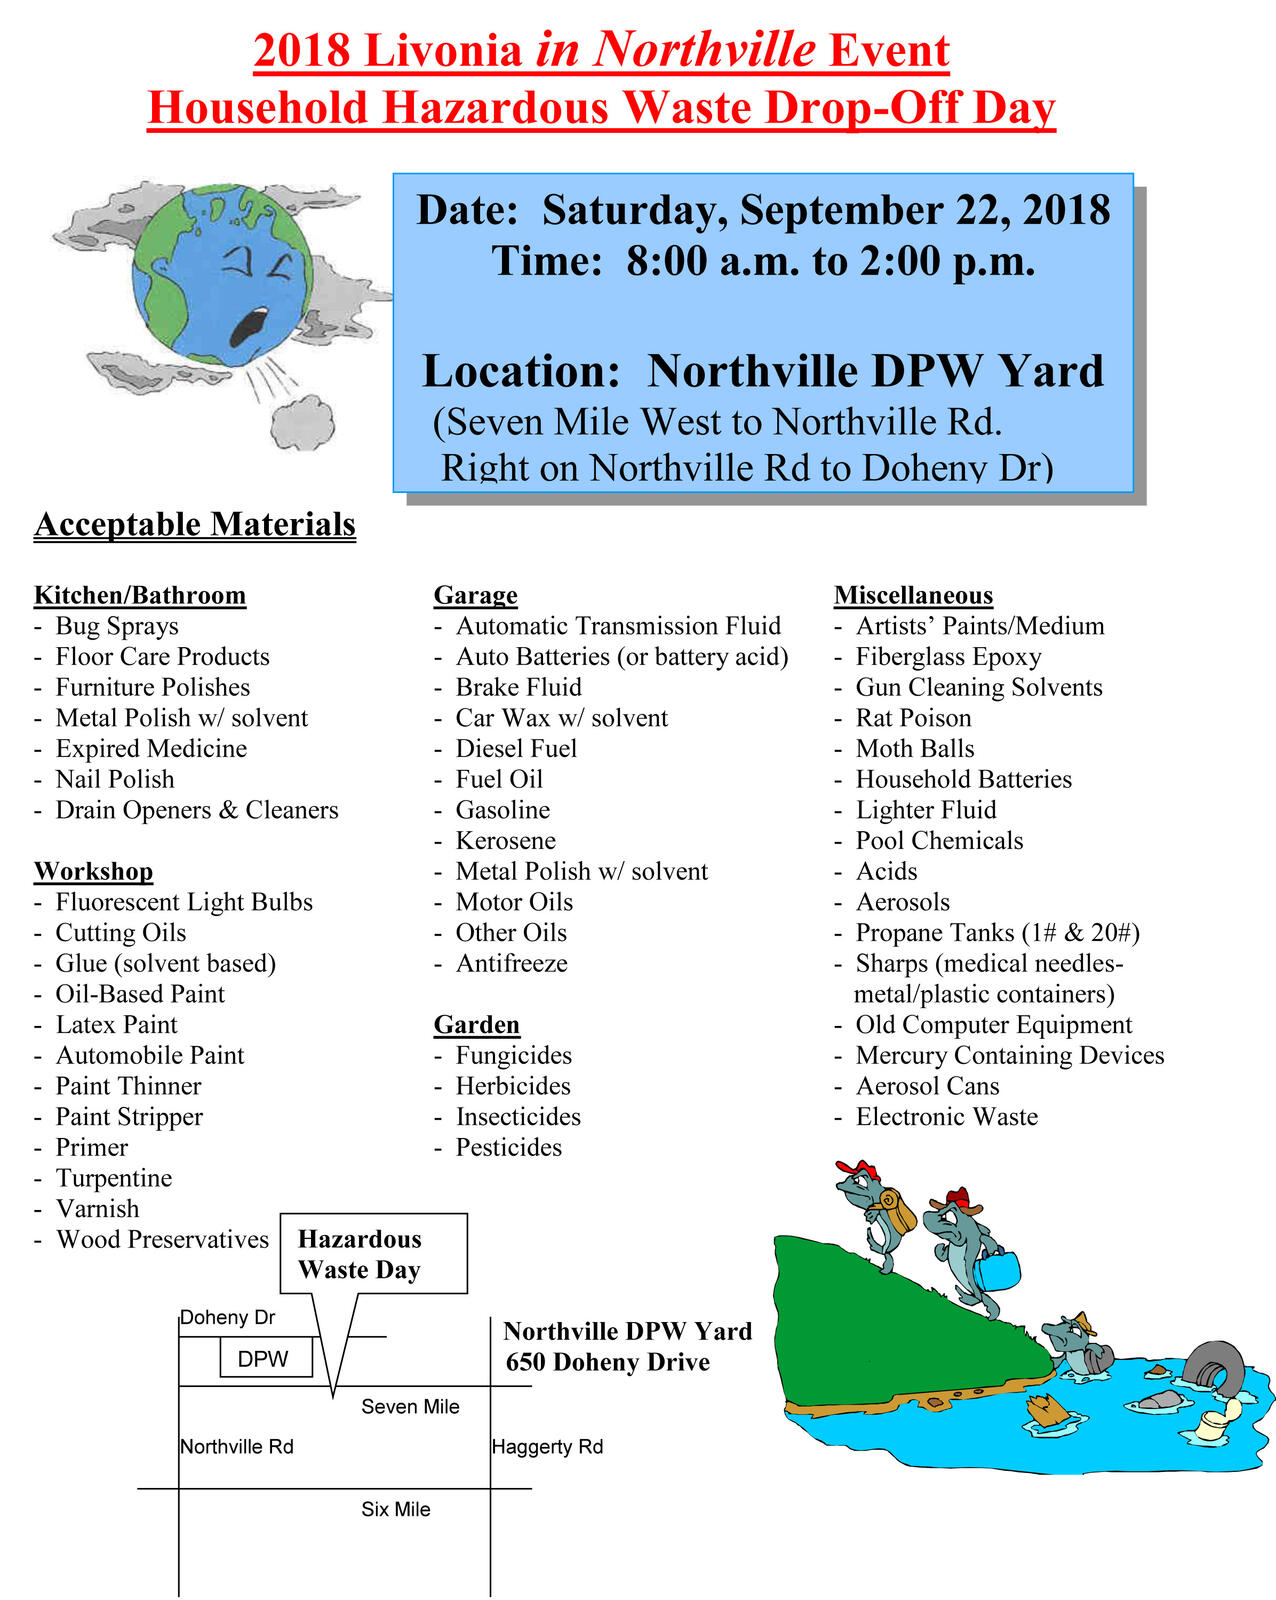 Recycling, Household Hazardous Waste Day and Document Shredding/Tire